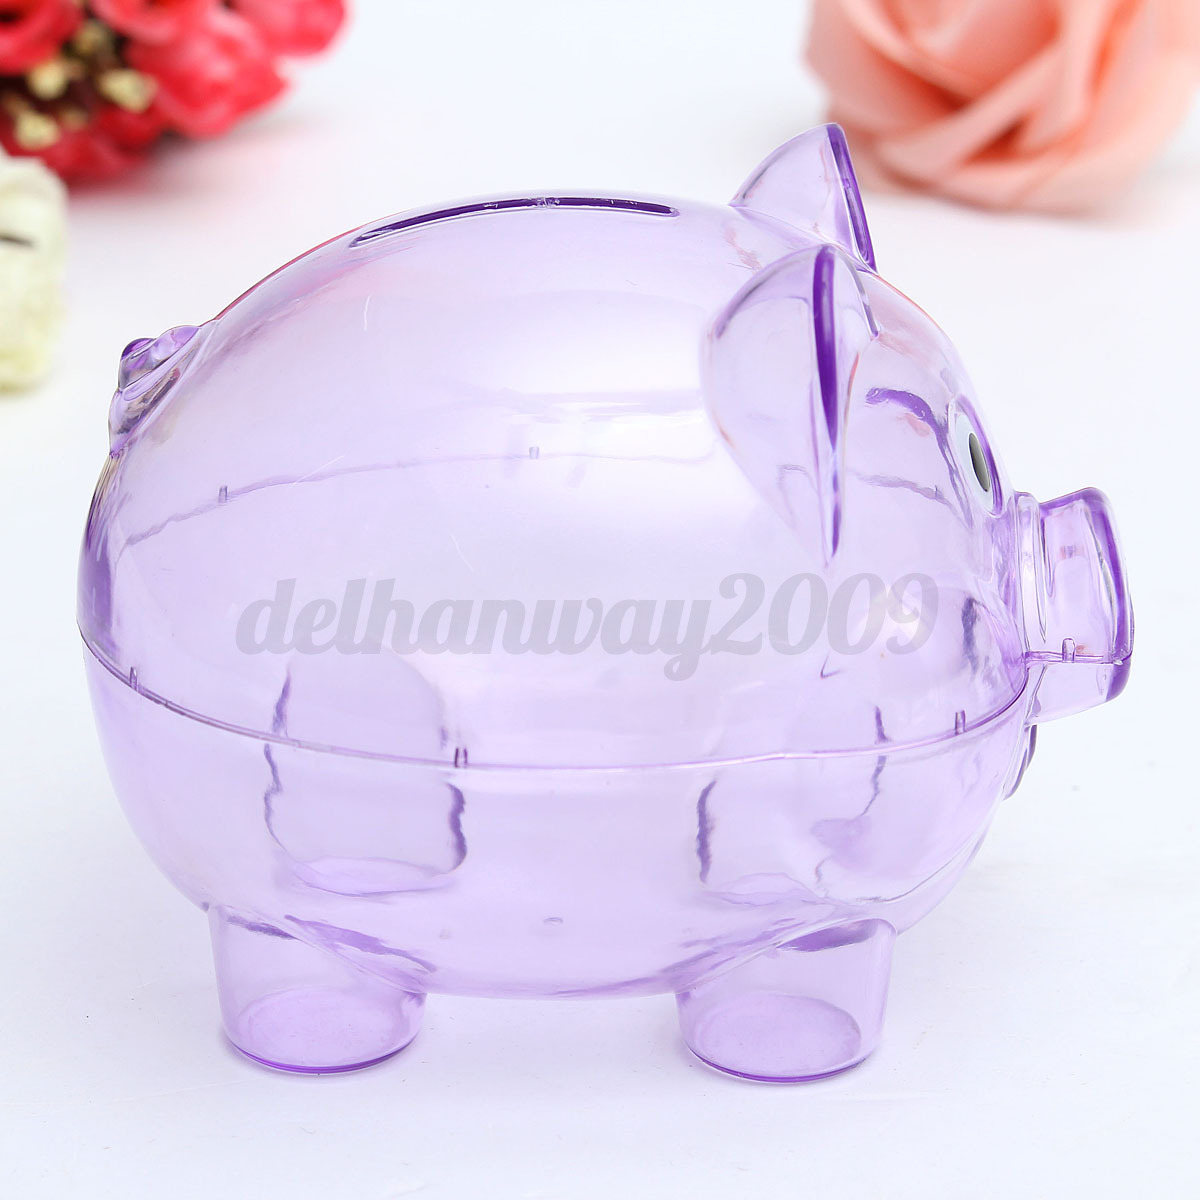 Money Bank For Kids Cute Novelty Plastic Pig Piggy Bank Saving Coins And Cash